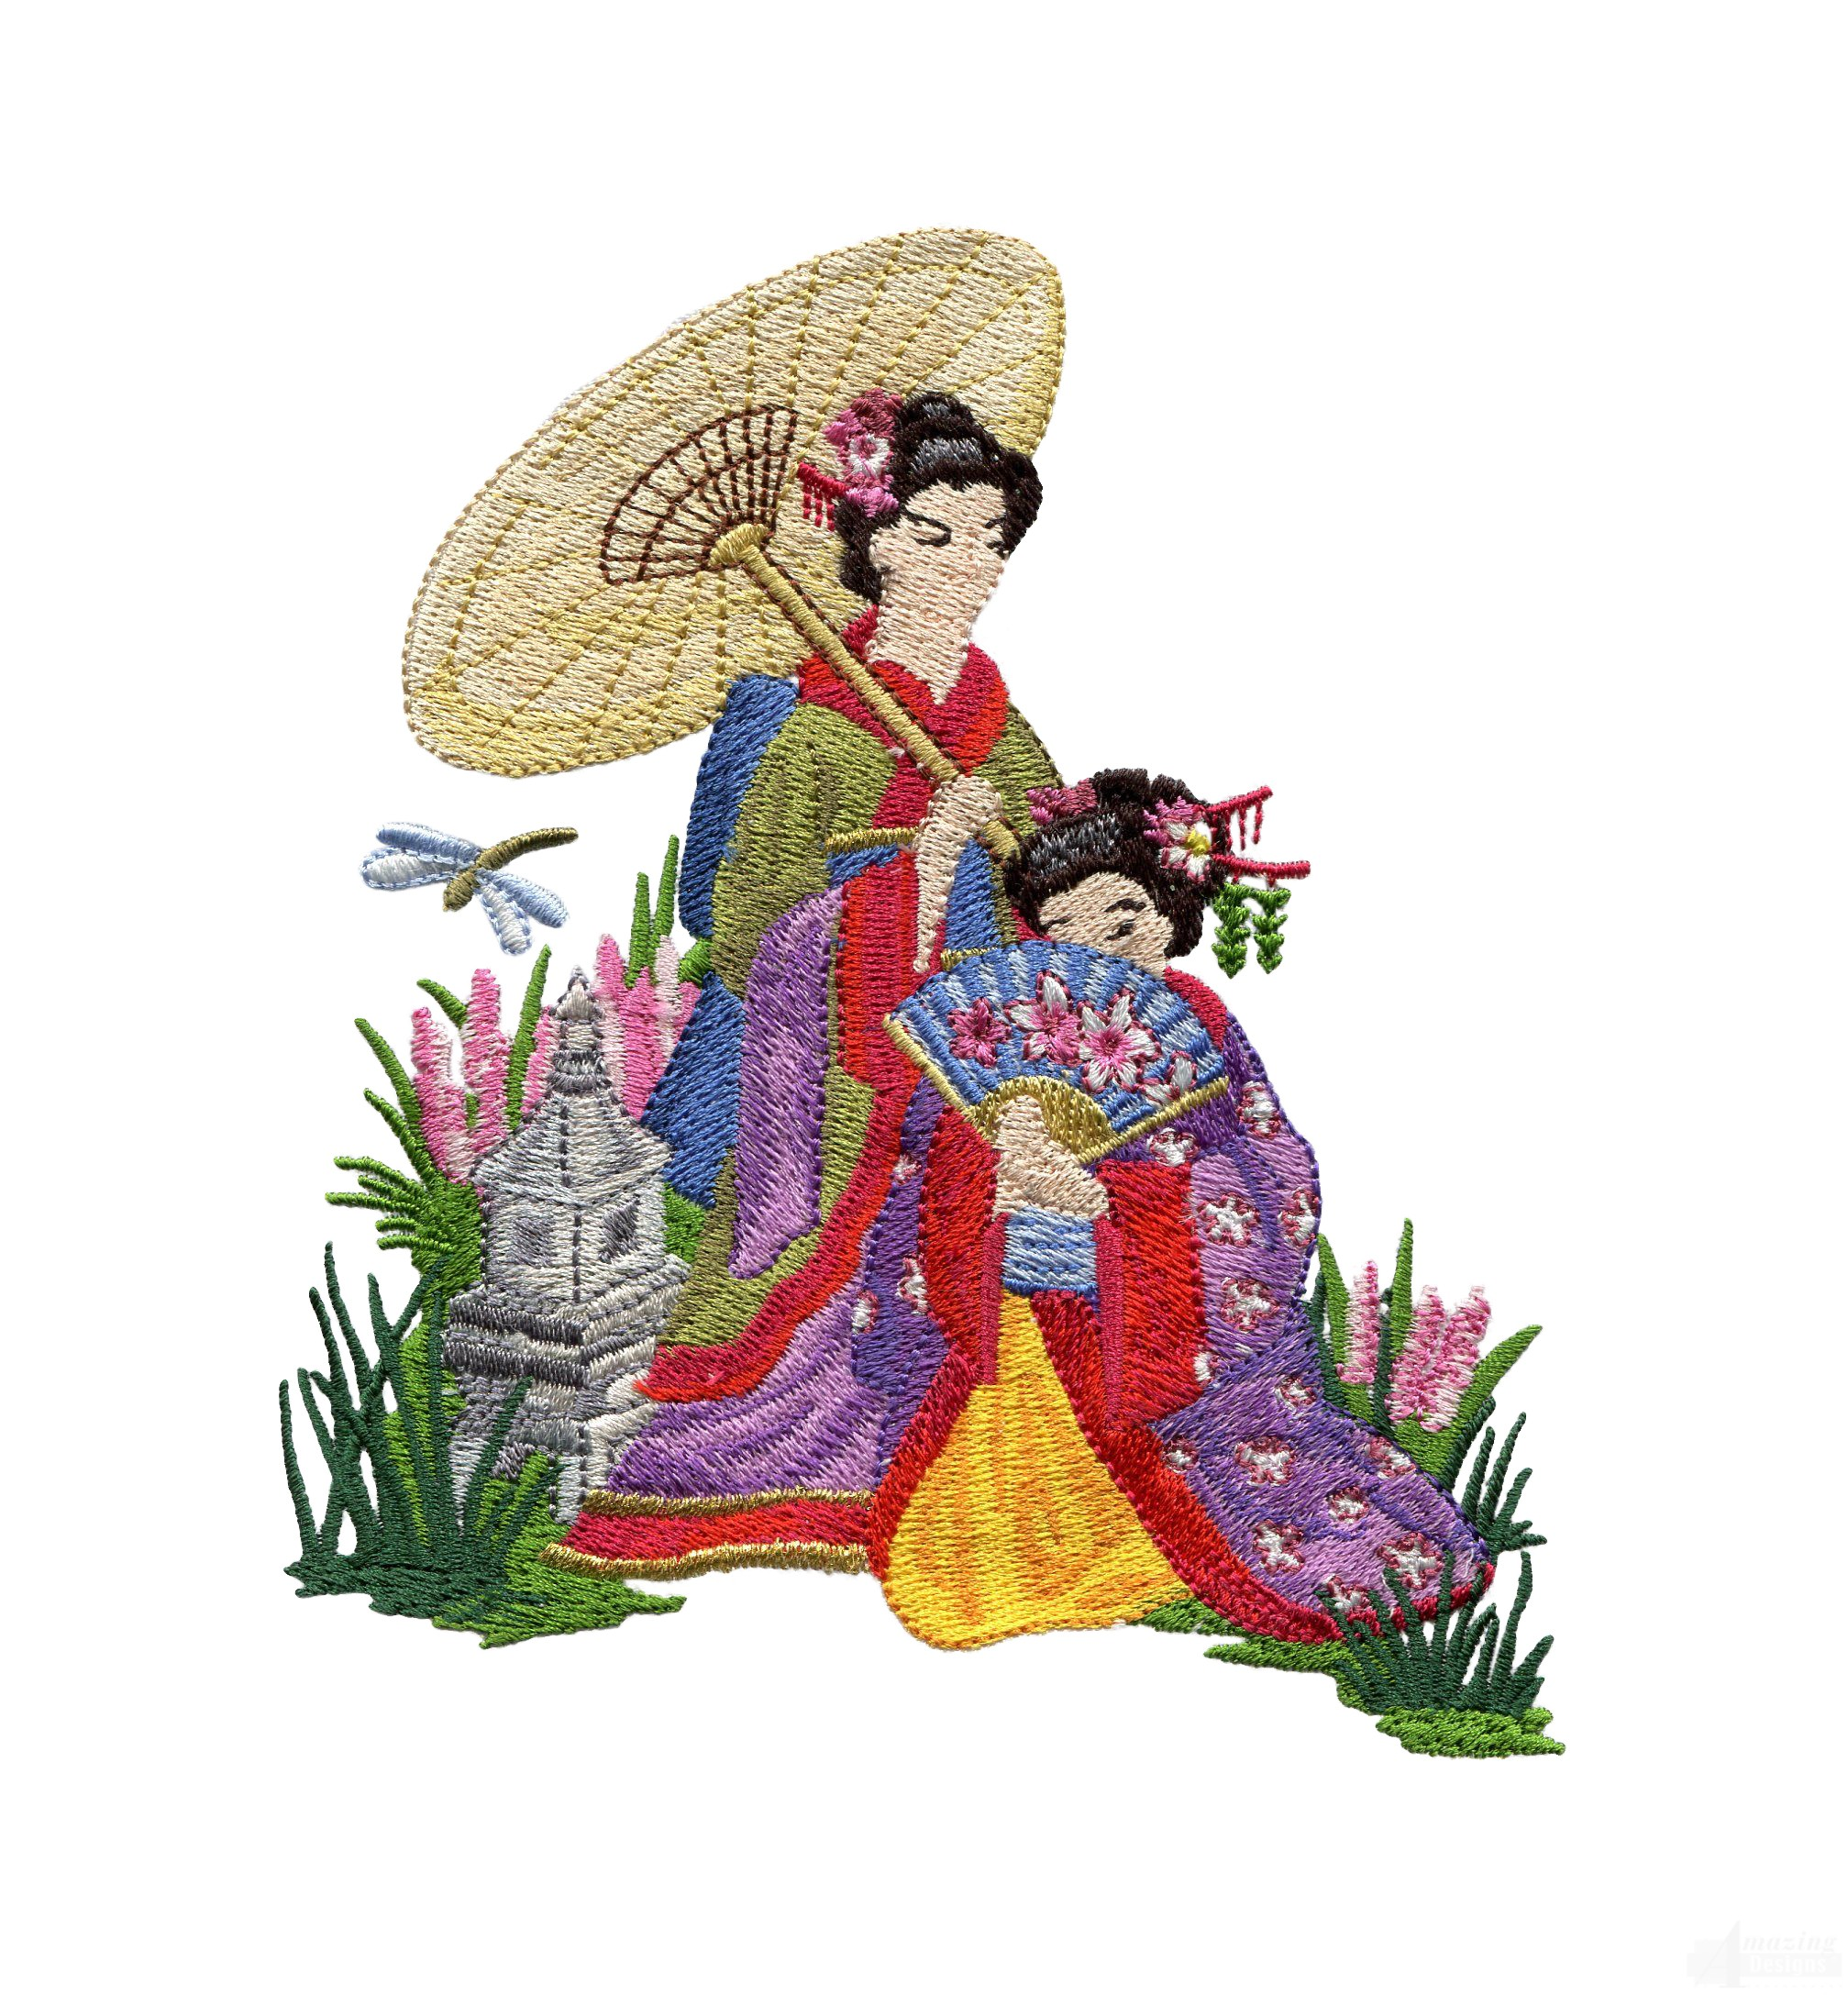 Swngg112 a geishas garden embroidery design for Garden embroidery designs free